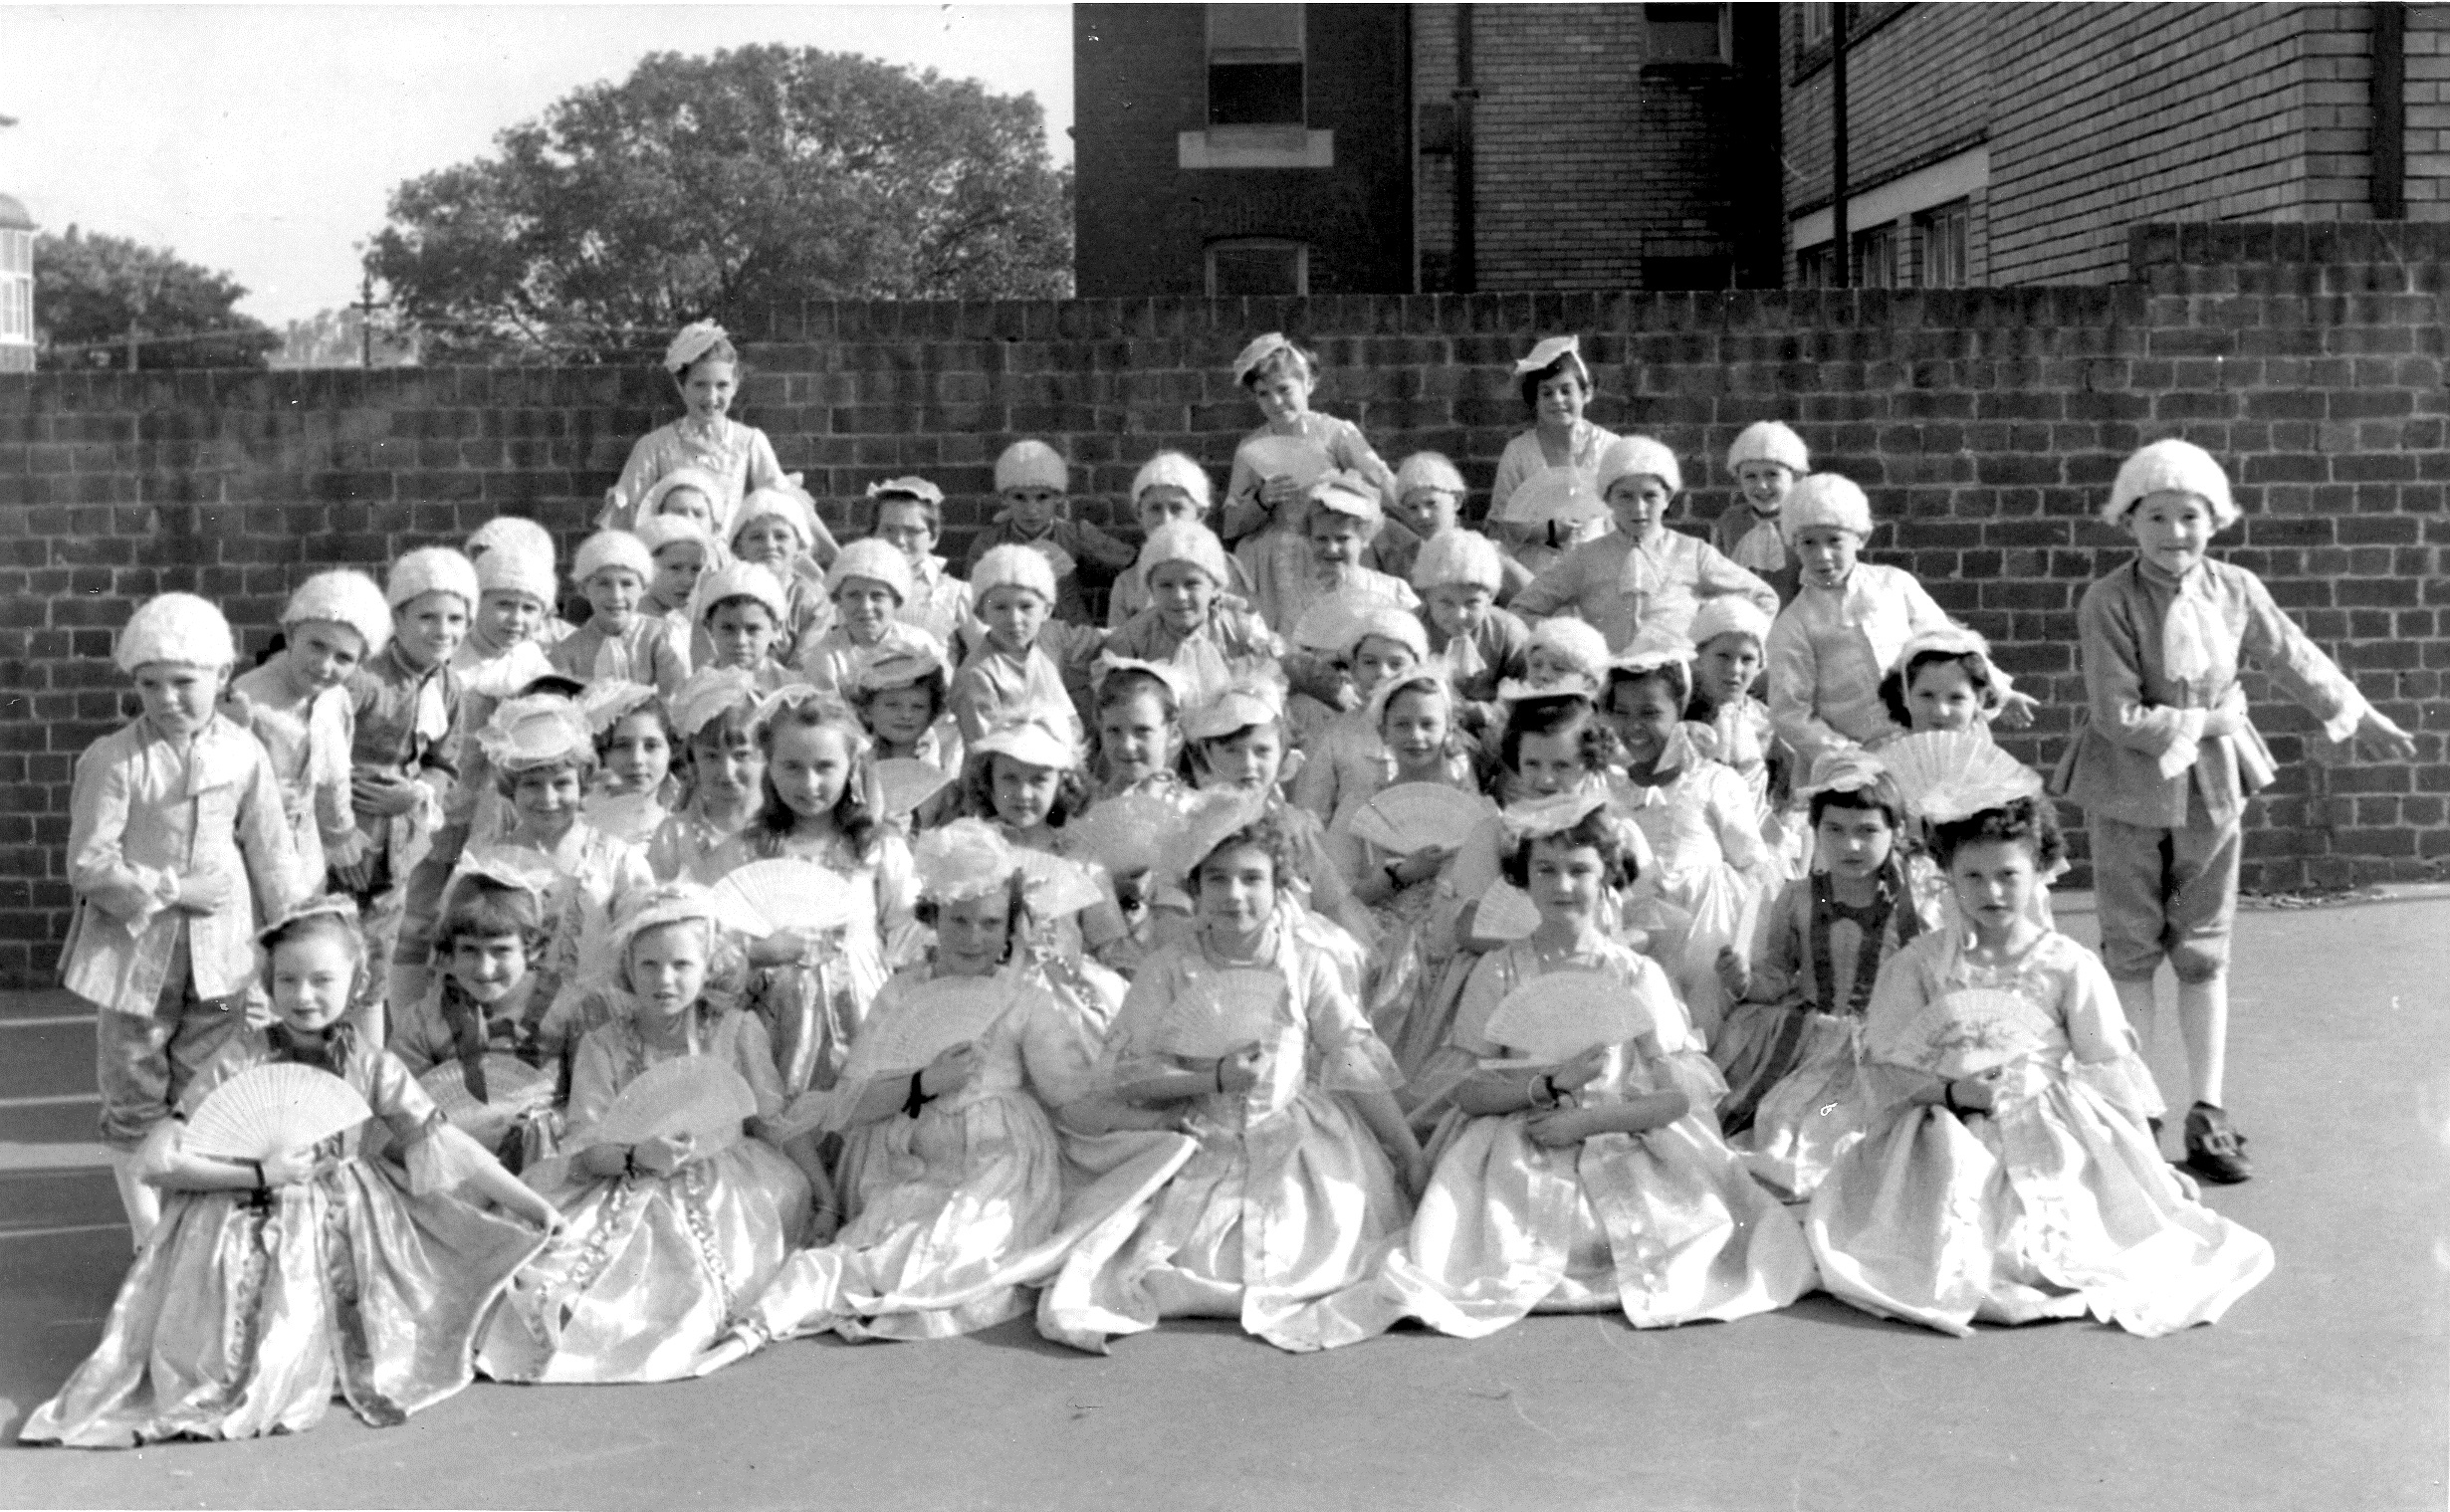 St James Year 3 pupils playing dress-ups in 1956